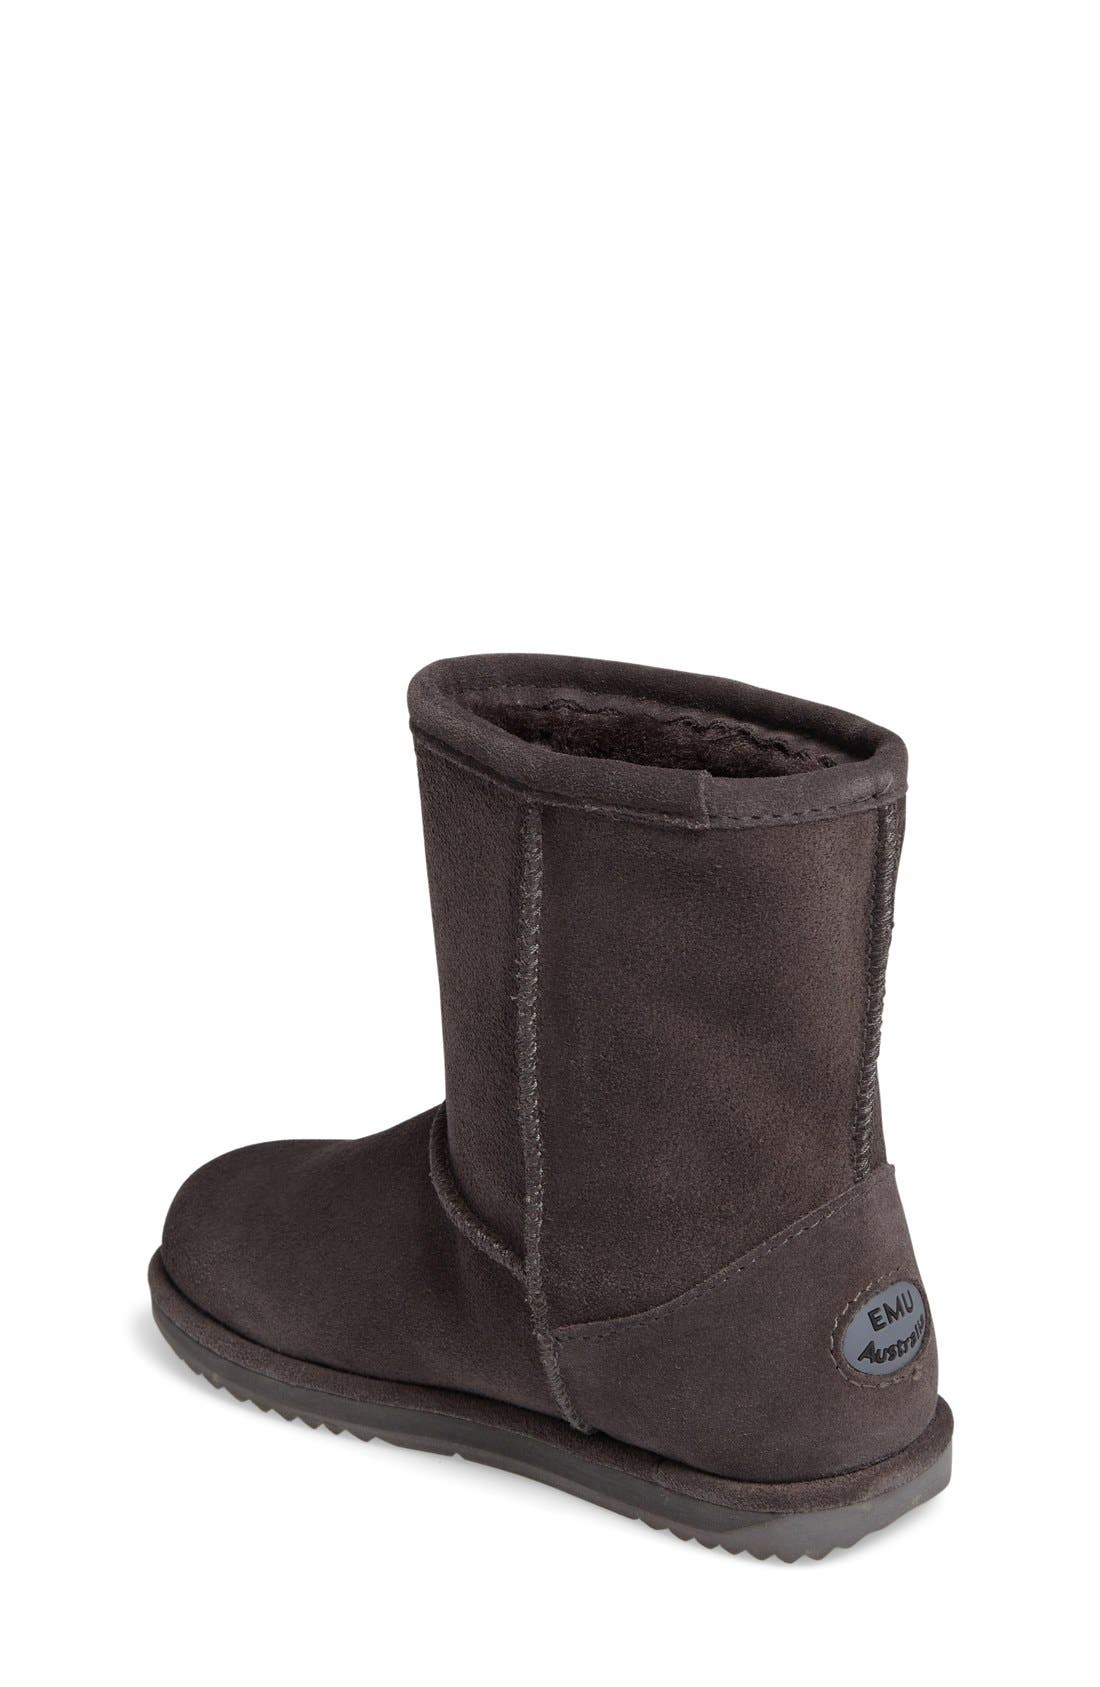 Alternate Image 2  - EMU Australia Brumby Waterproof Boot (Toddler, Little Kid & Big Kid)